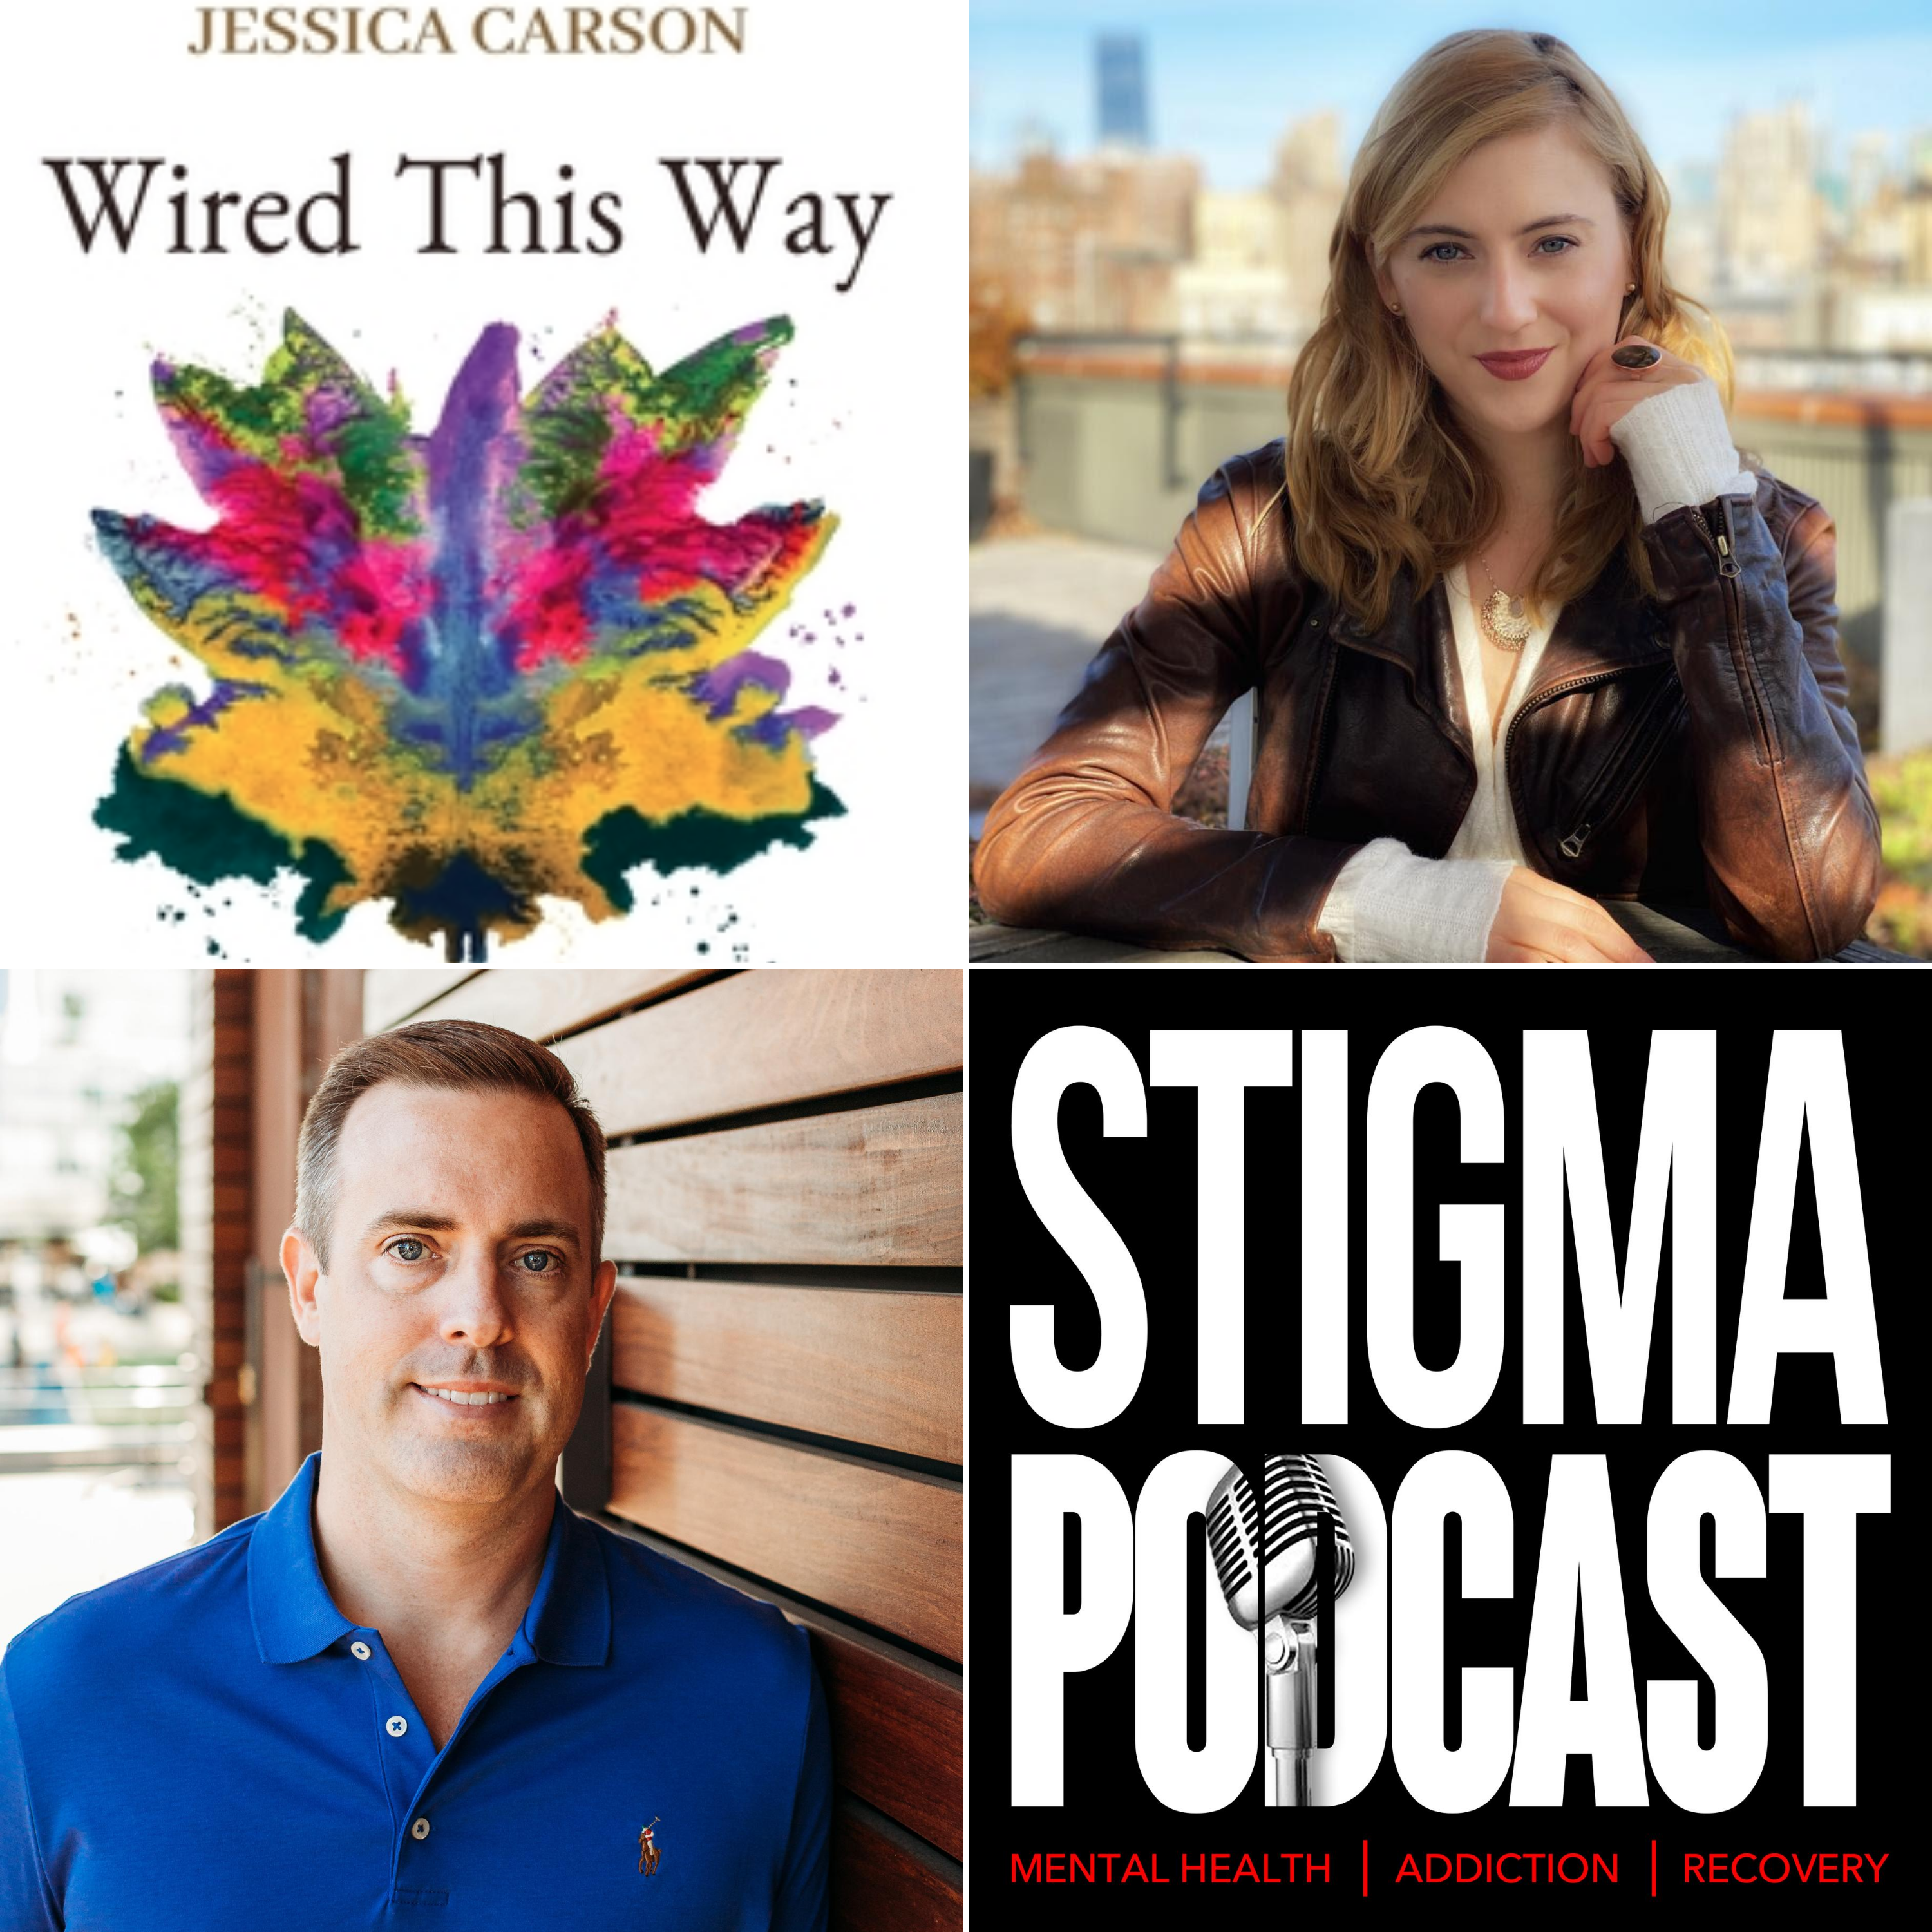 """Stigma Podcast - Mental Health - #66 - Jessica Carson, Author of """"Wired This Way"""" on Entrepreneur Mental Health"""